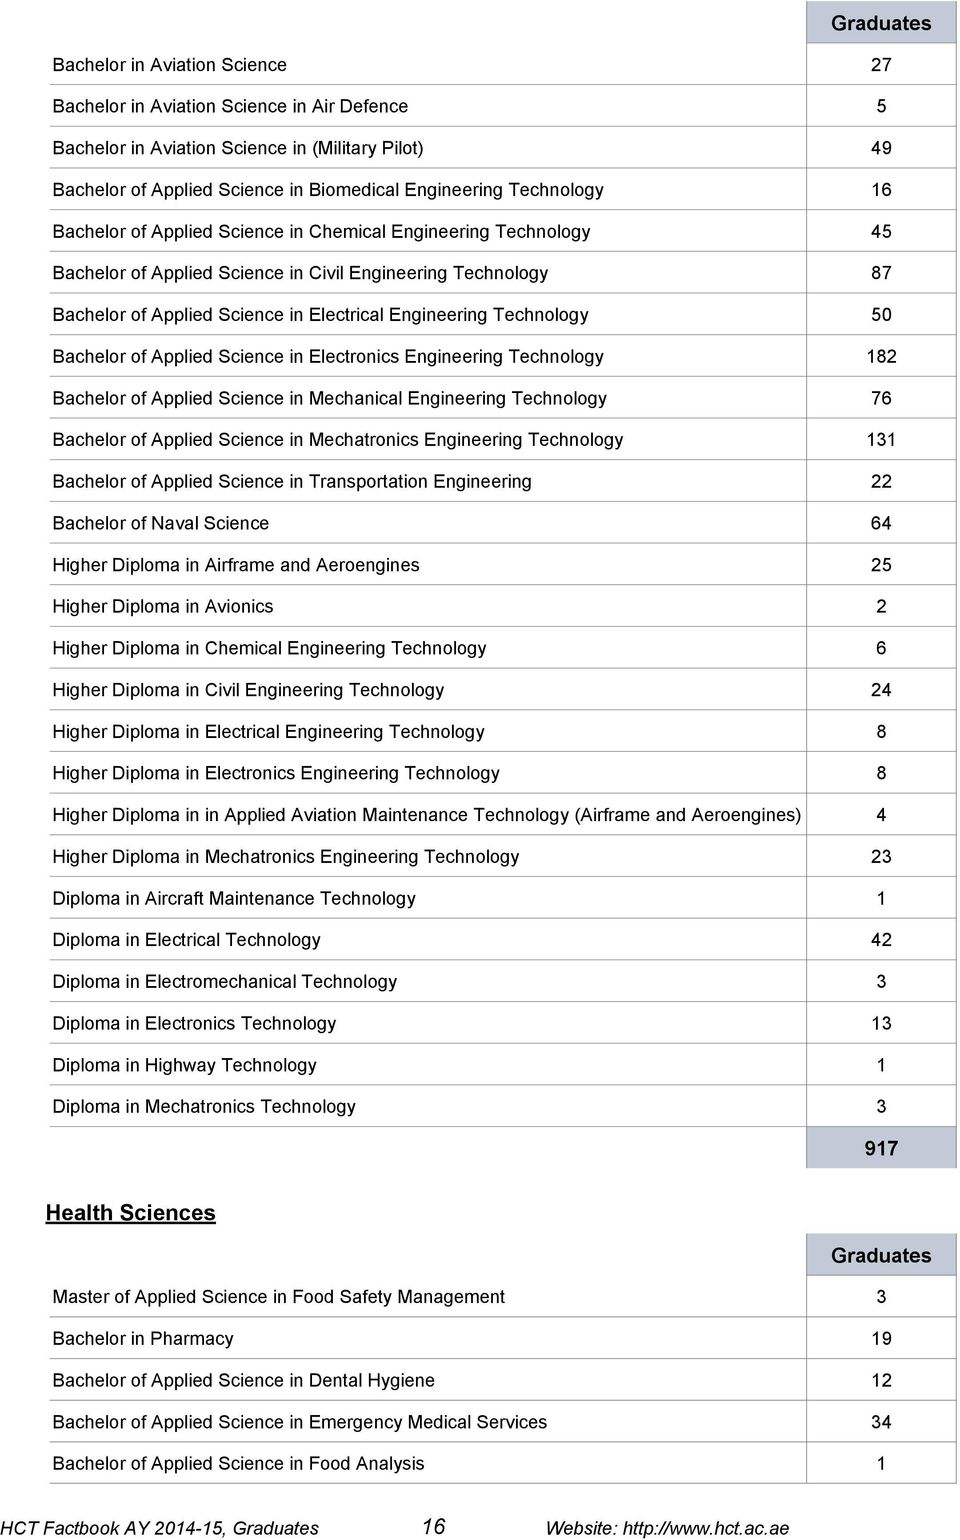 Bachelor of Applied Science in Electronics Engineering Technology 182 Bachelor of Applied Science in Mechanical Engineering Technology 76 Bachelor of Applied Science in Mechatronics Engineering